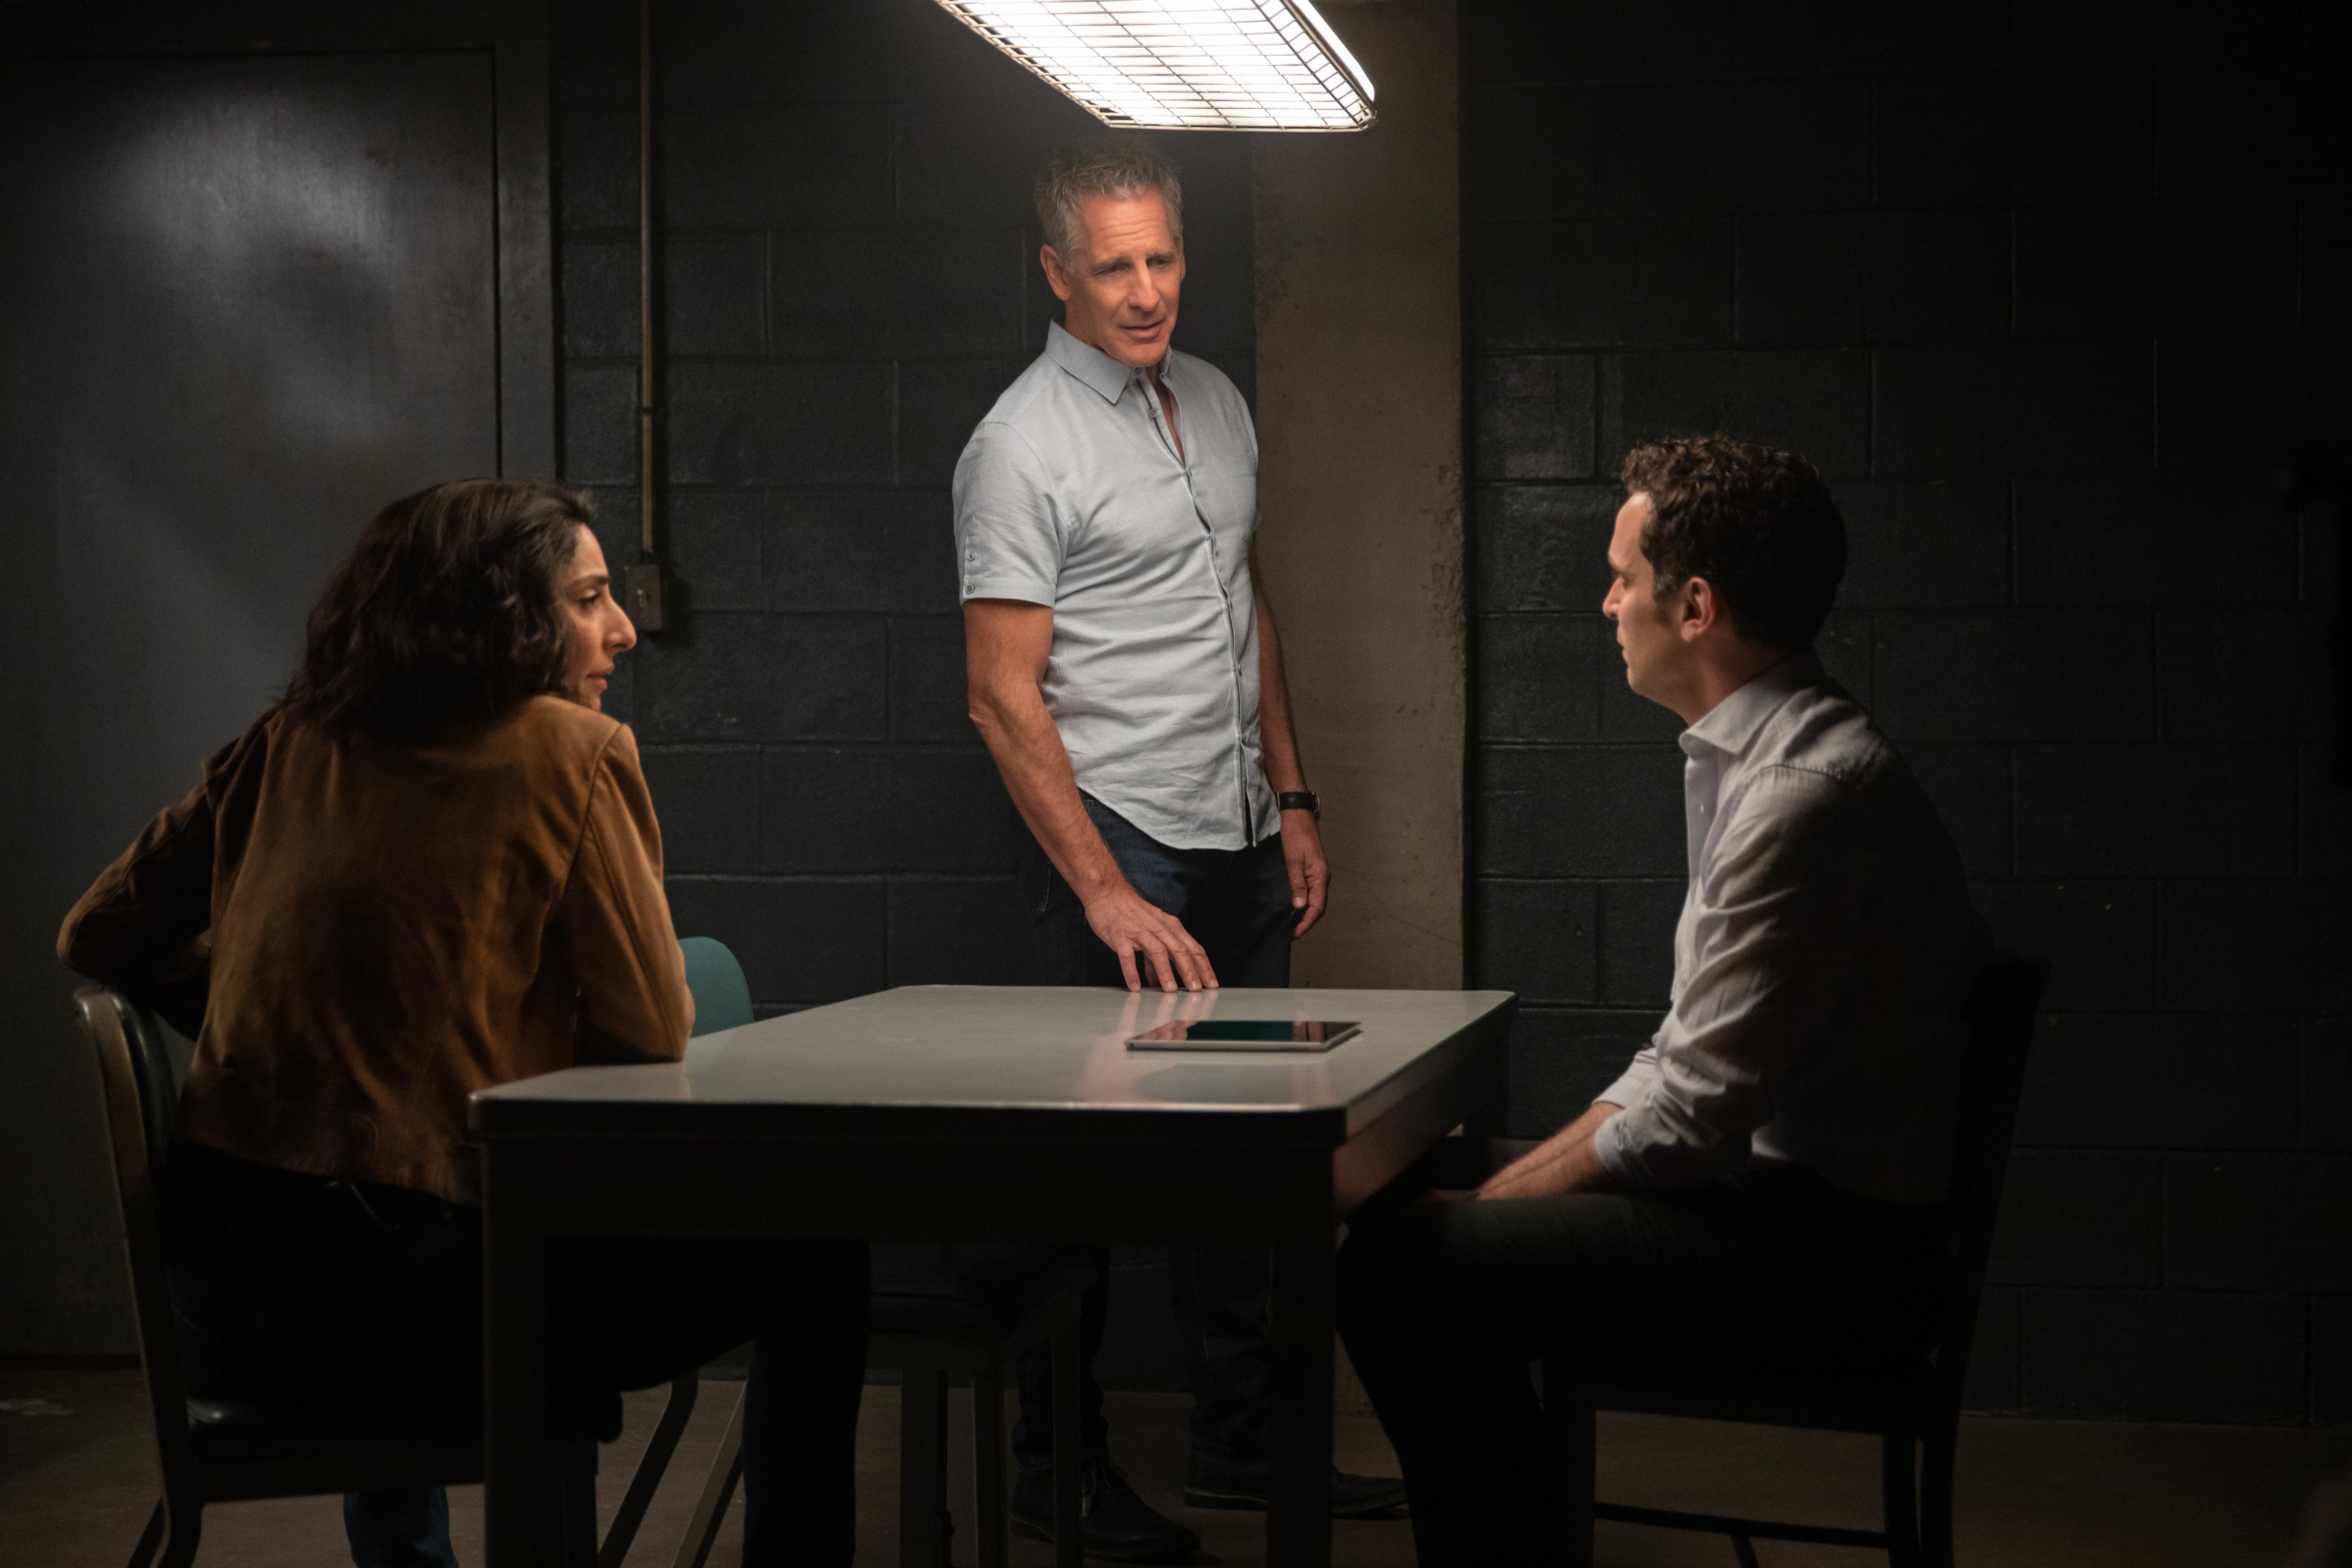 Ncis Schedule 2020 NCIS: New Orleans And NCIS: Los Angeles Both Renewed For 2019 2020